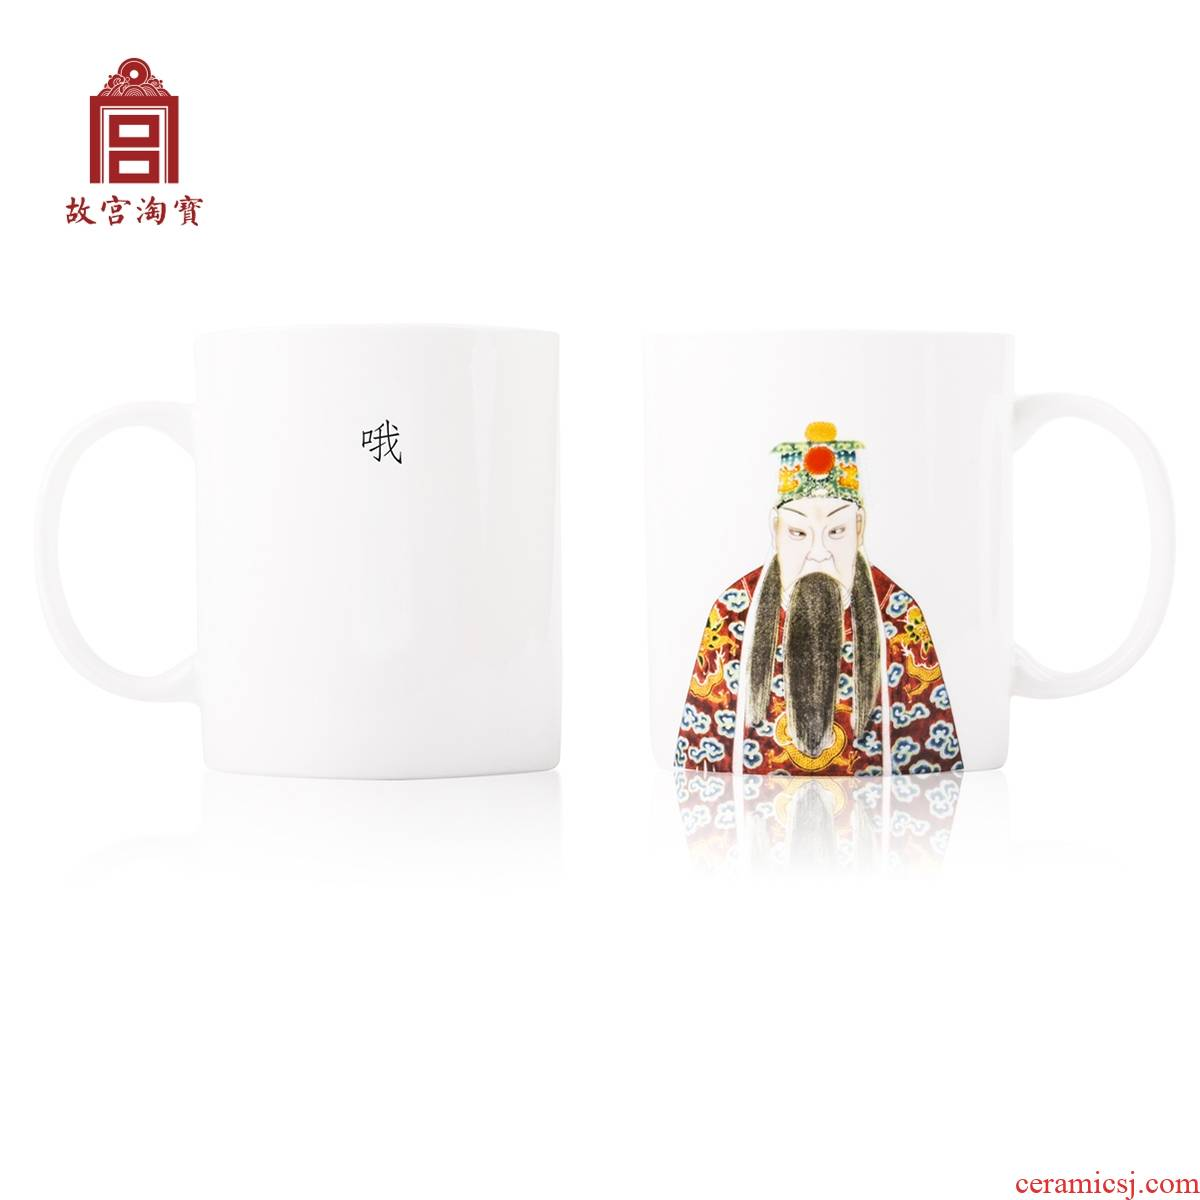 The Qing imperial palace taobao 】 【 drama series interesting pictures ipads porcelain cup